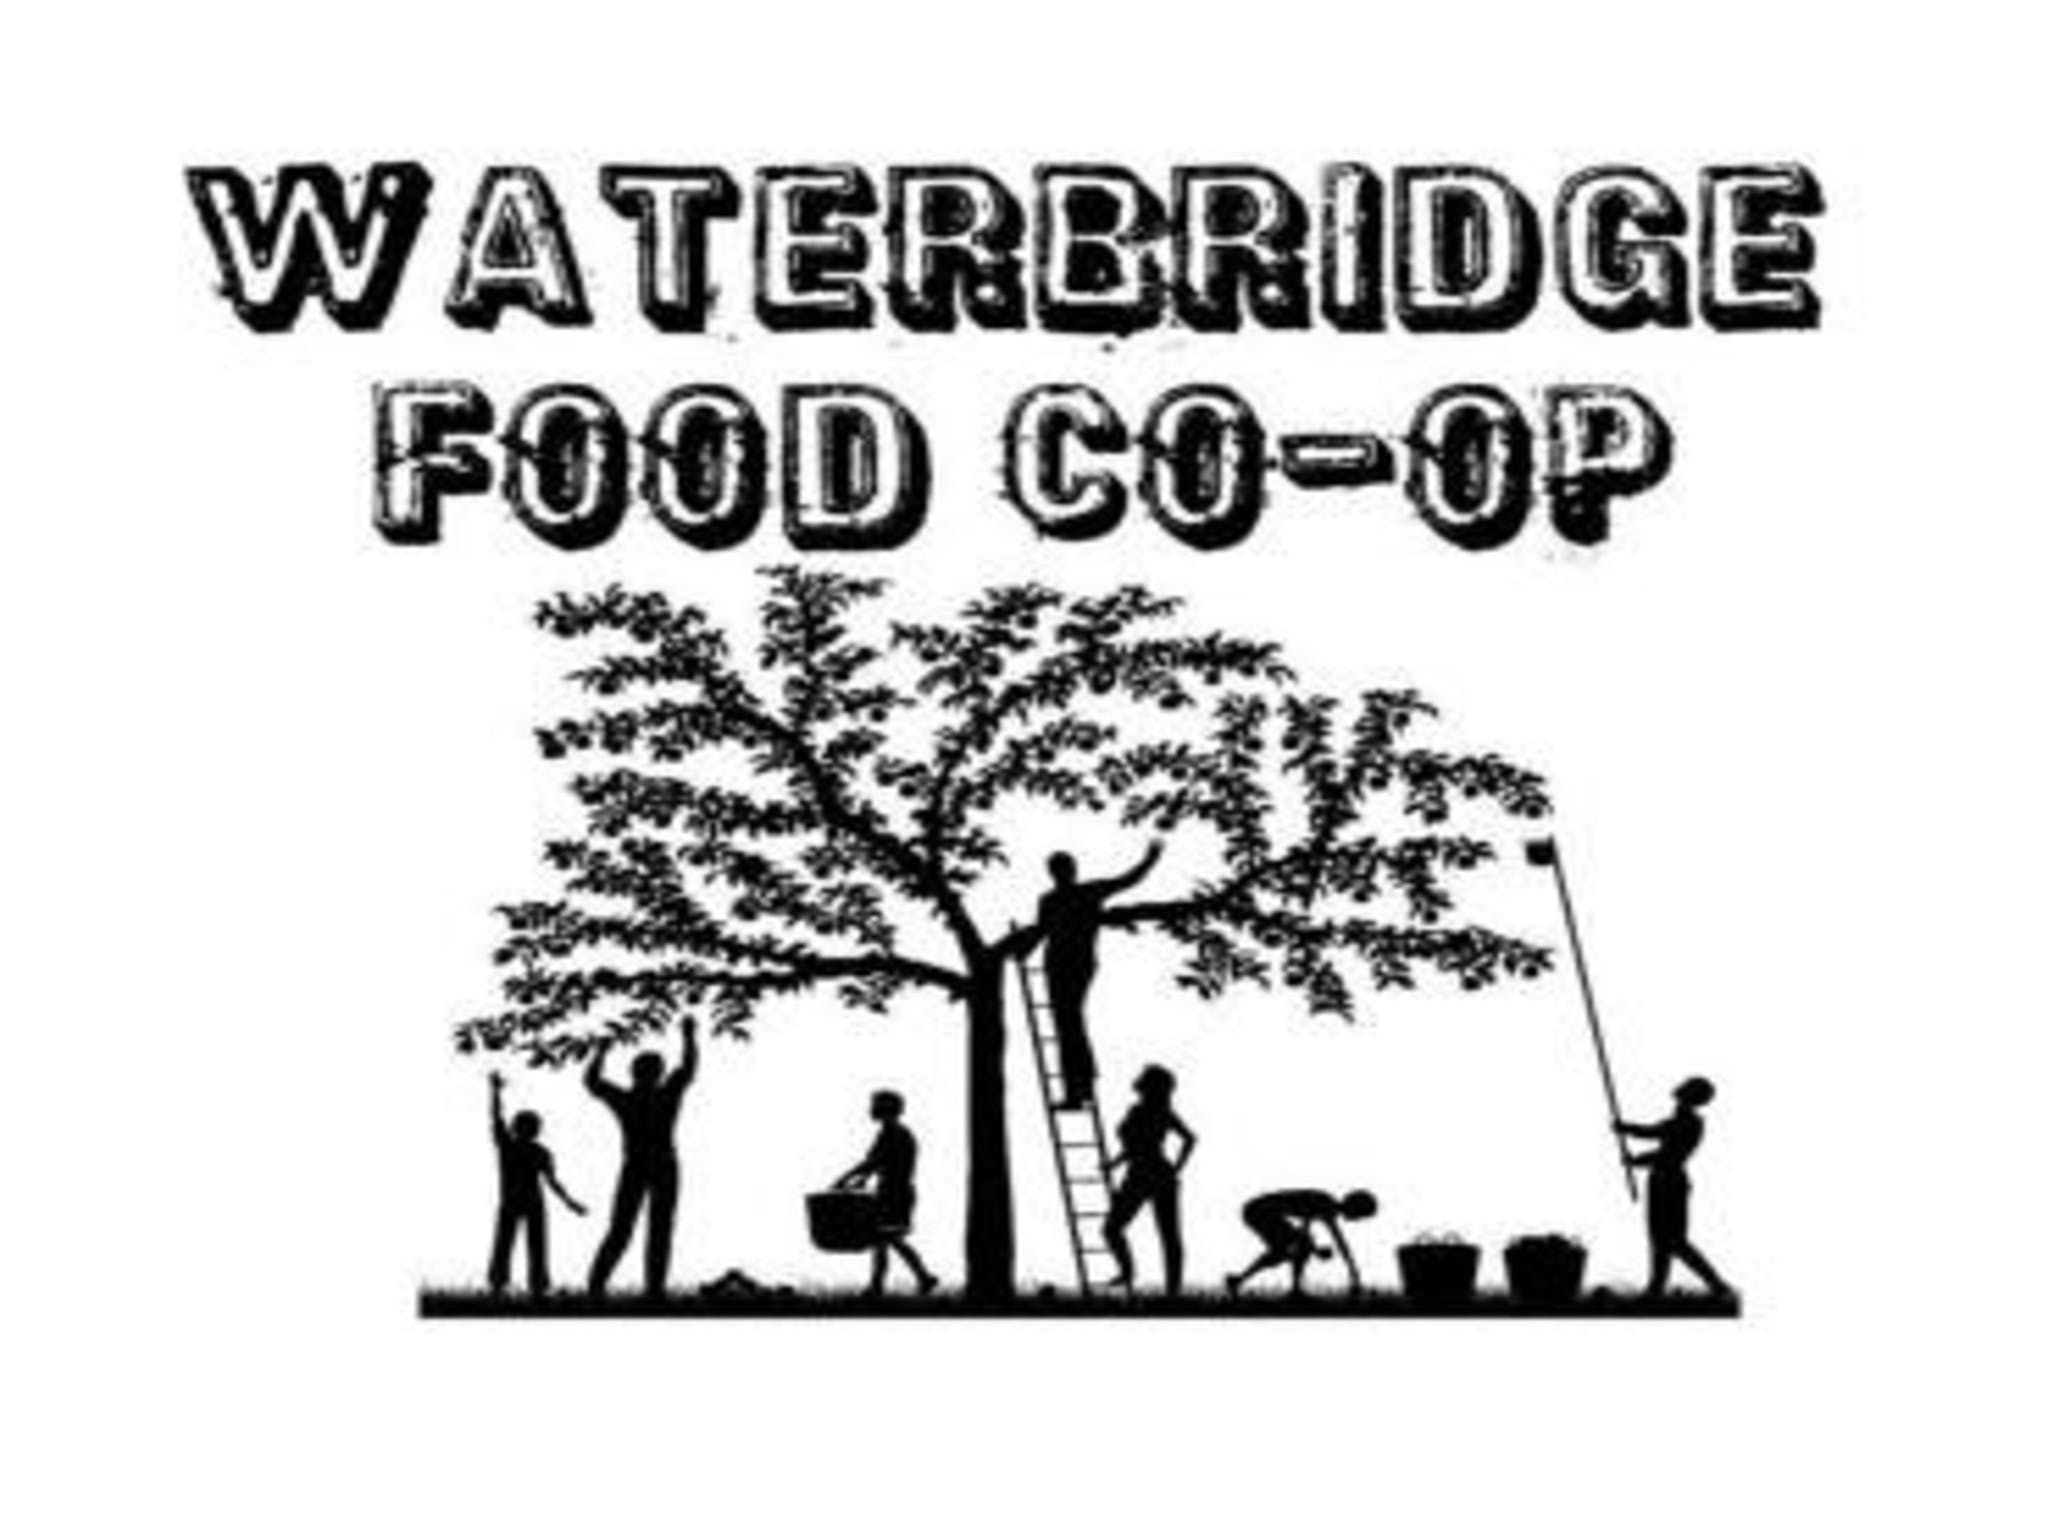 Waterbridge Food Pantry - Food Delivery Shop